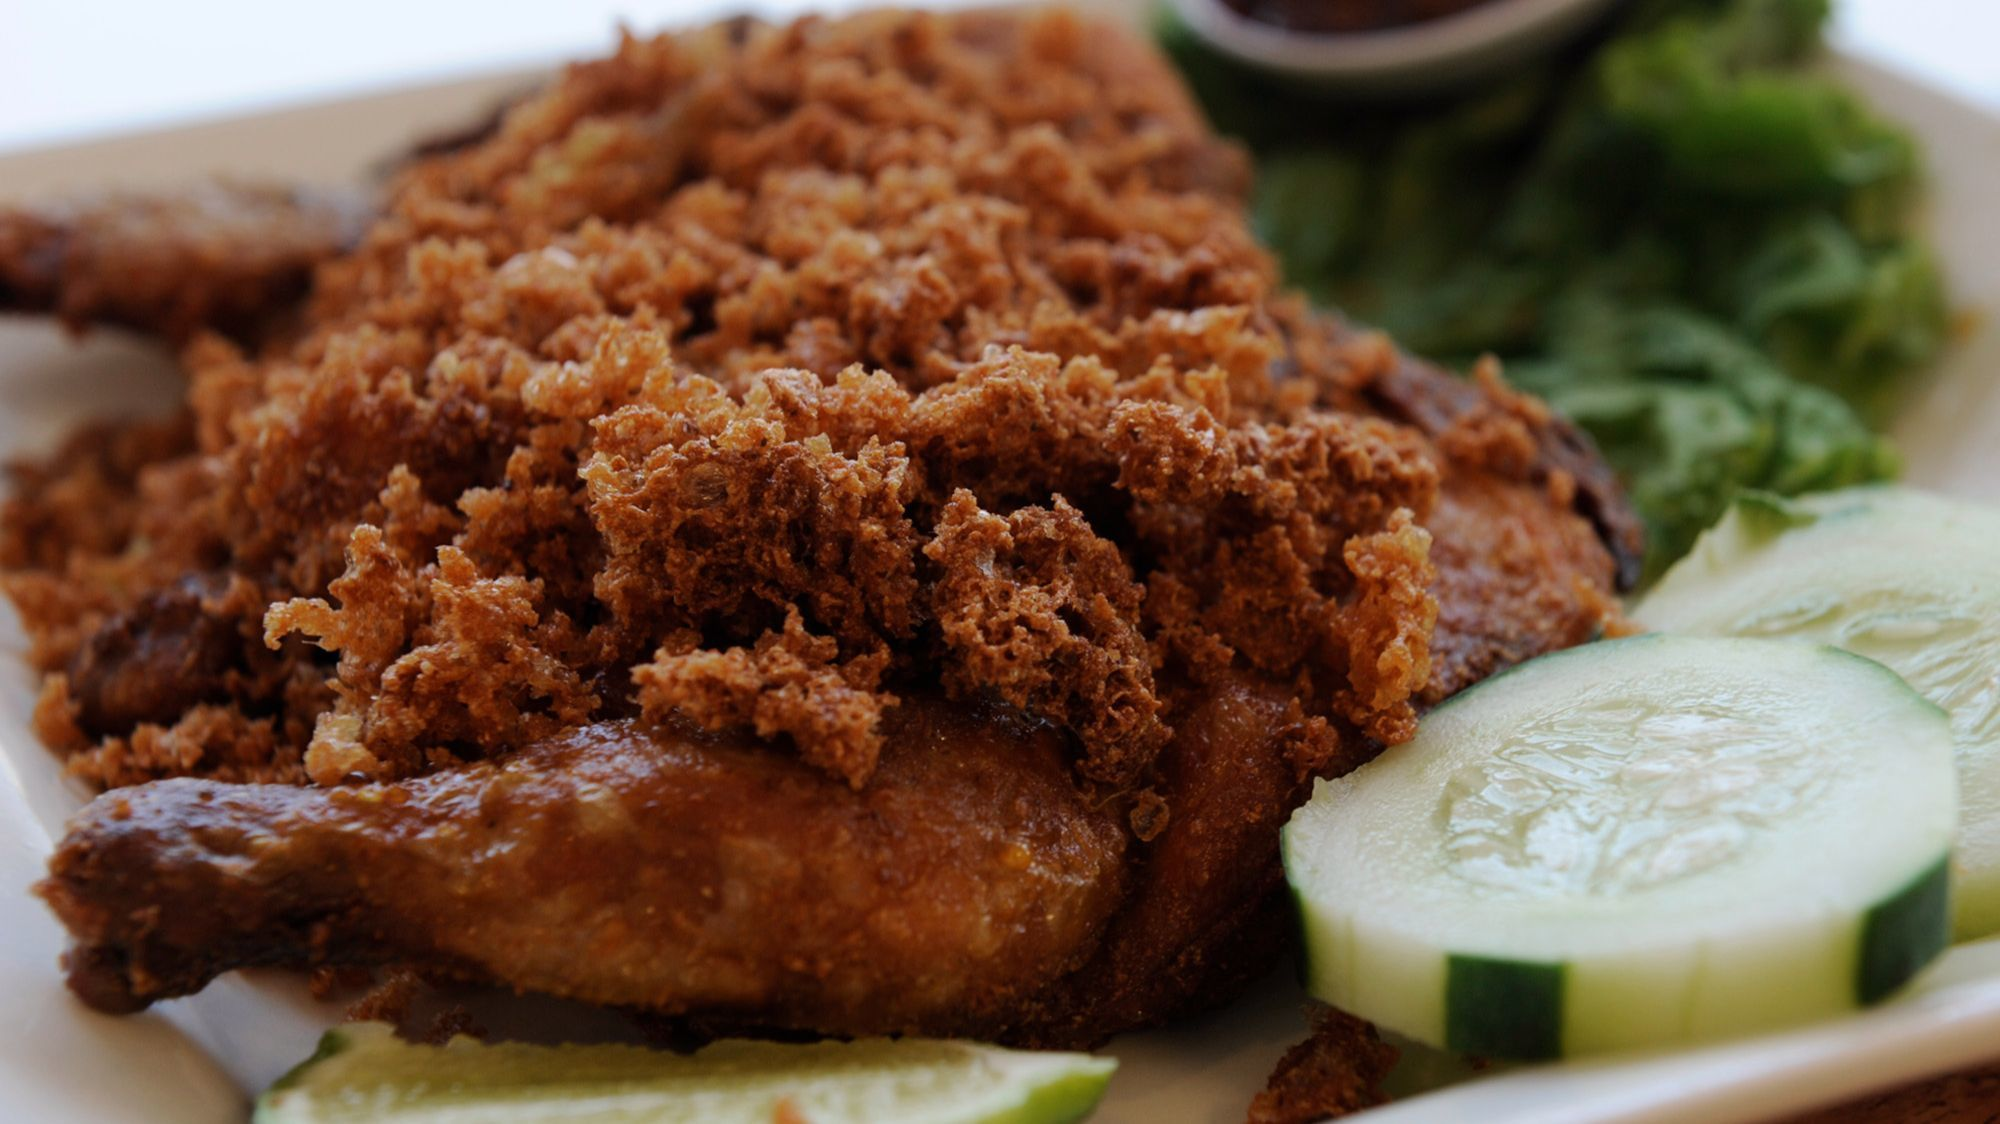 The Indonesian fried chicken at Merry's House of Chicken.